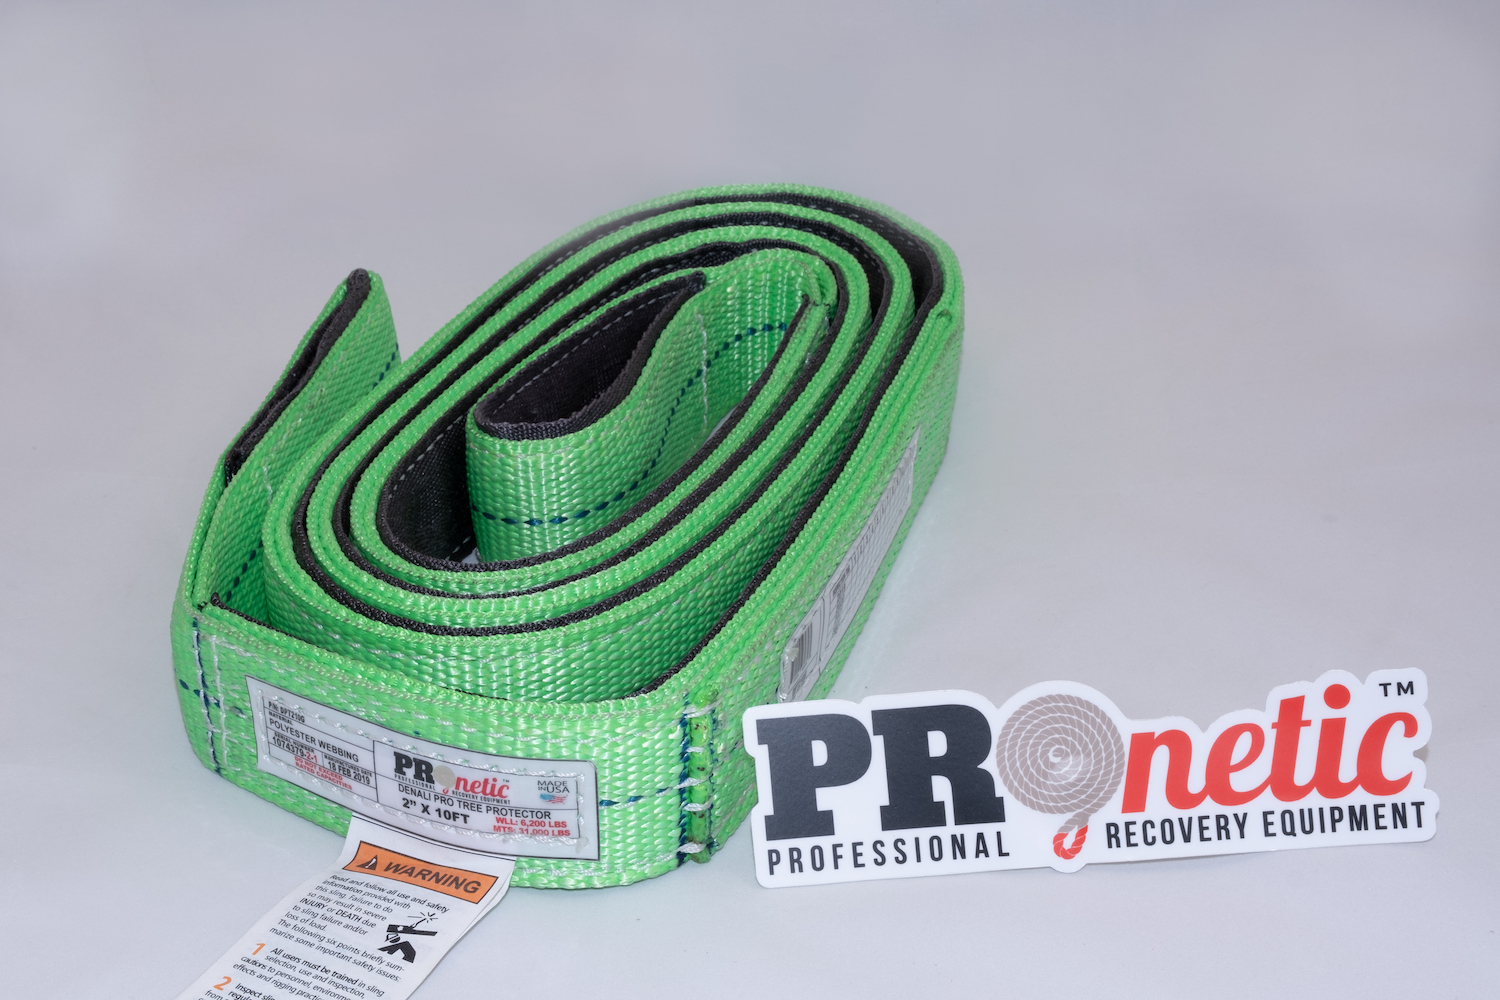 PROnetic Denali Pro Tree Protector